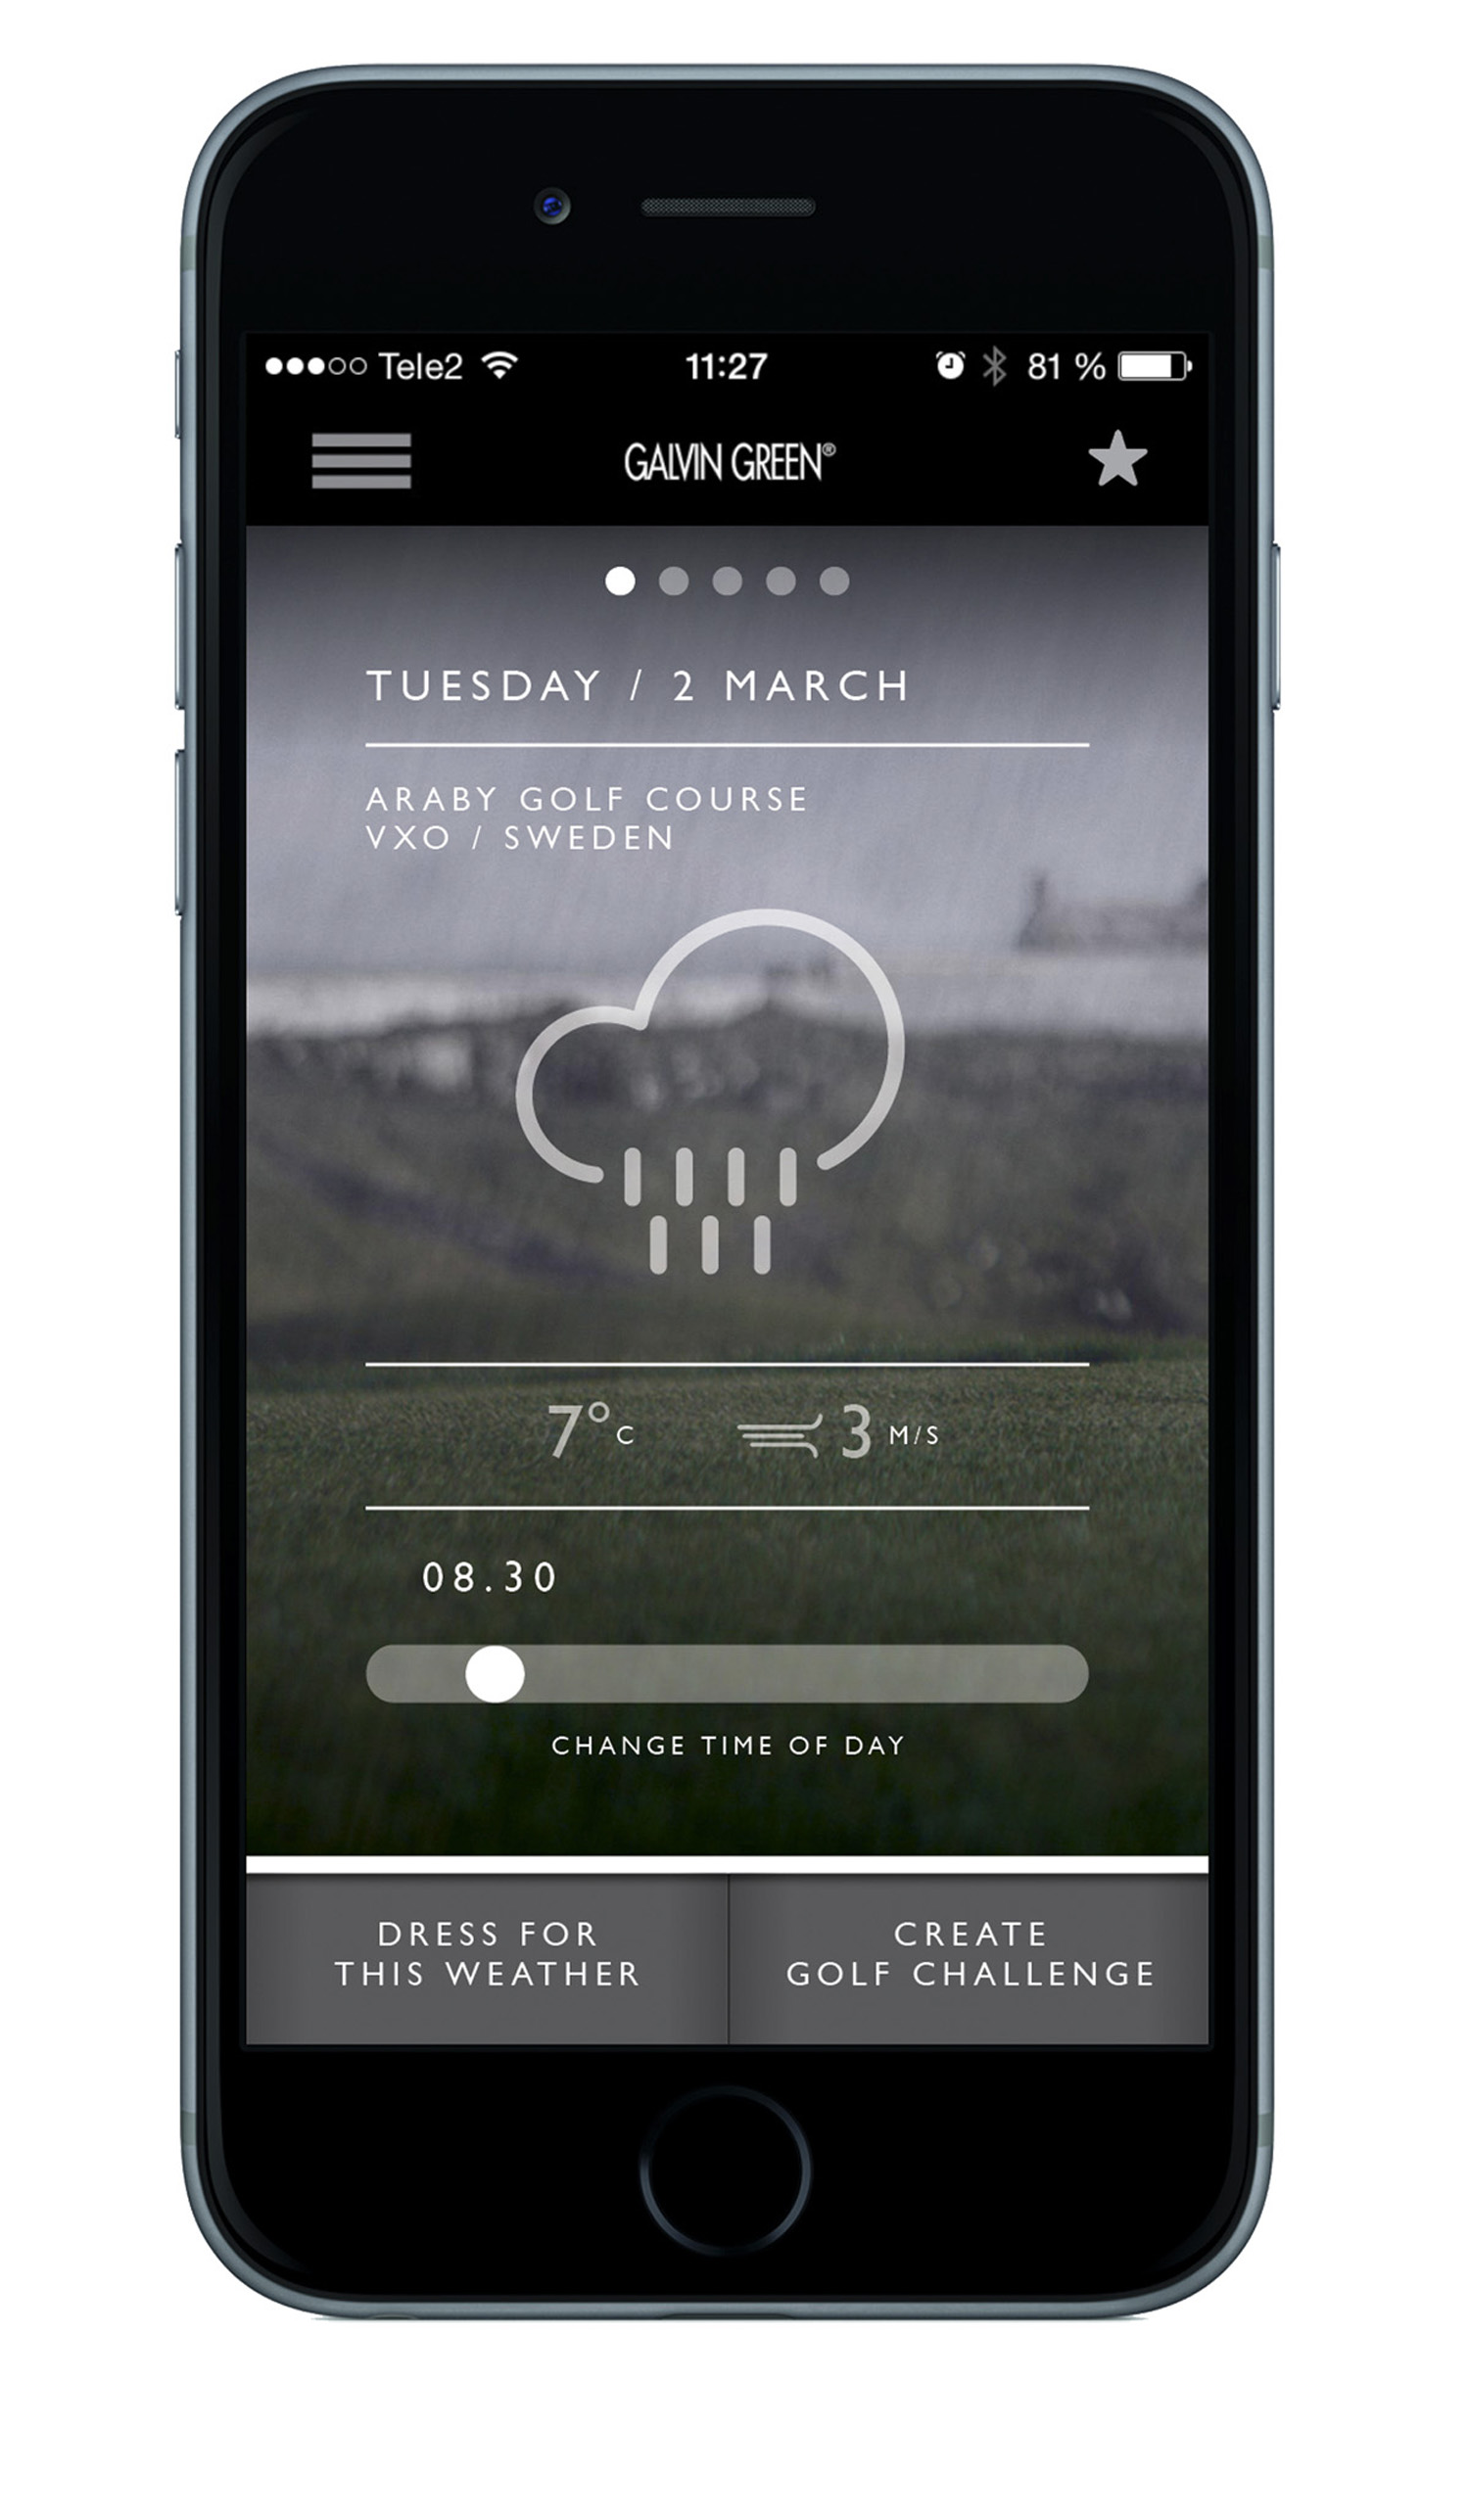 Galvin Green - Gear Up App